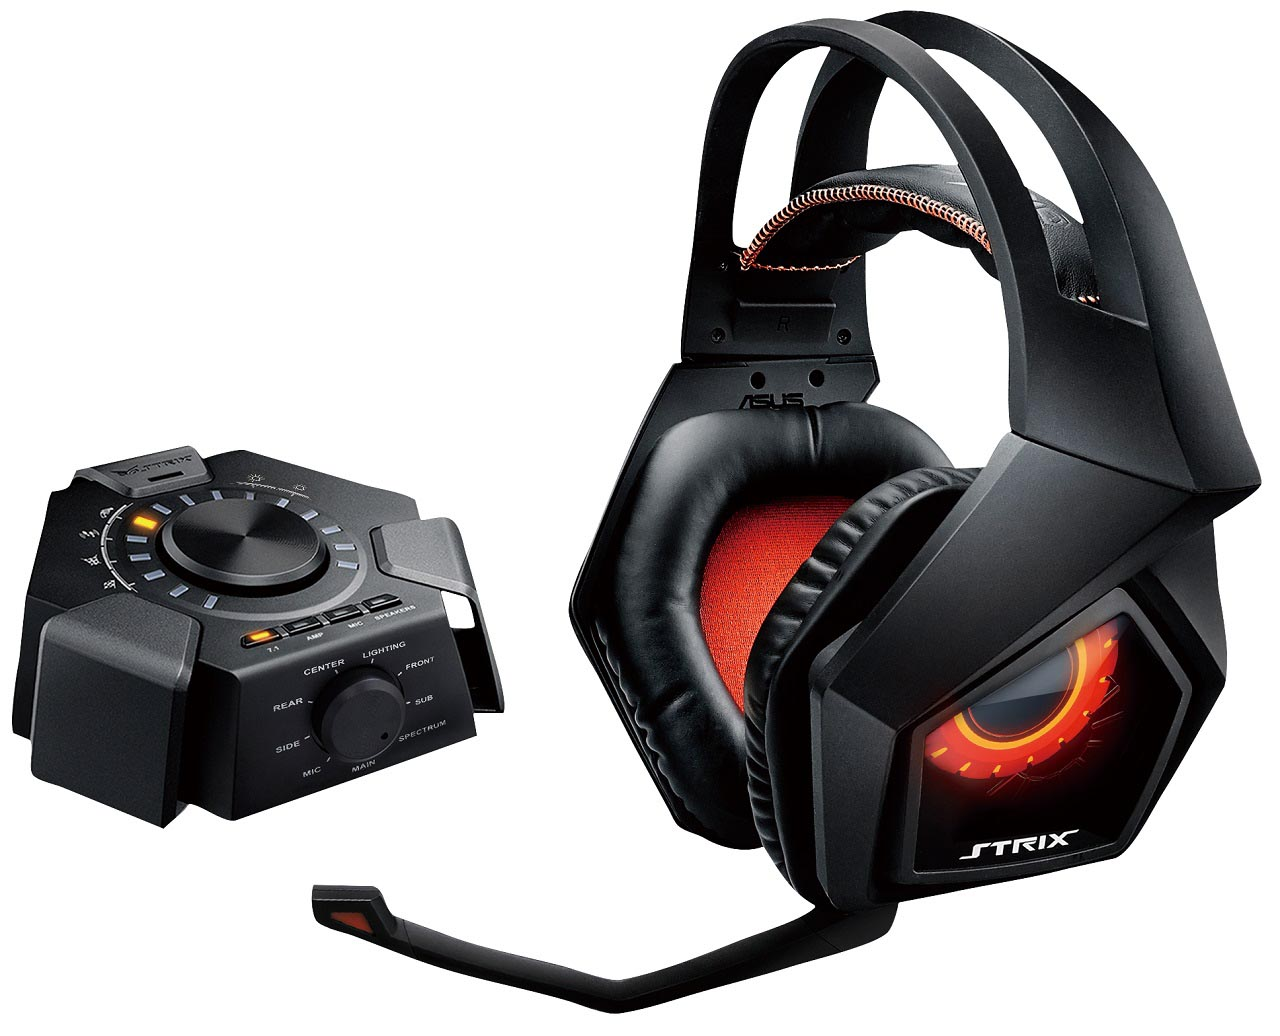 asus annuncia le cuffie gaming strix 7 1 true 7 1 surround bits and chips. Black Bedroom Furniture Sets. Home Design Ideas